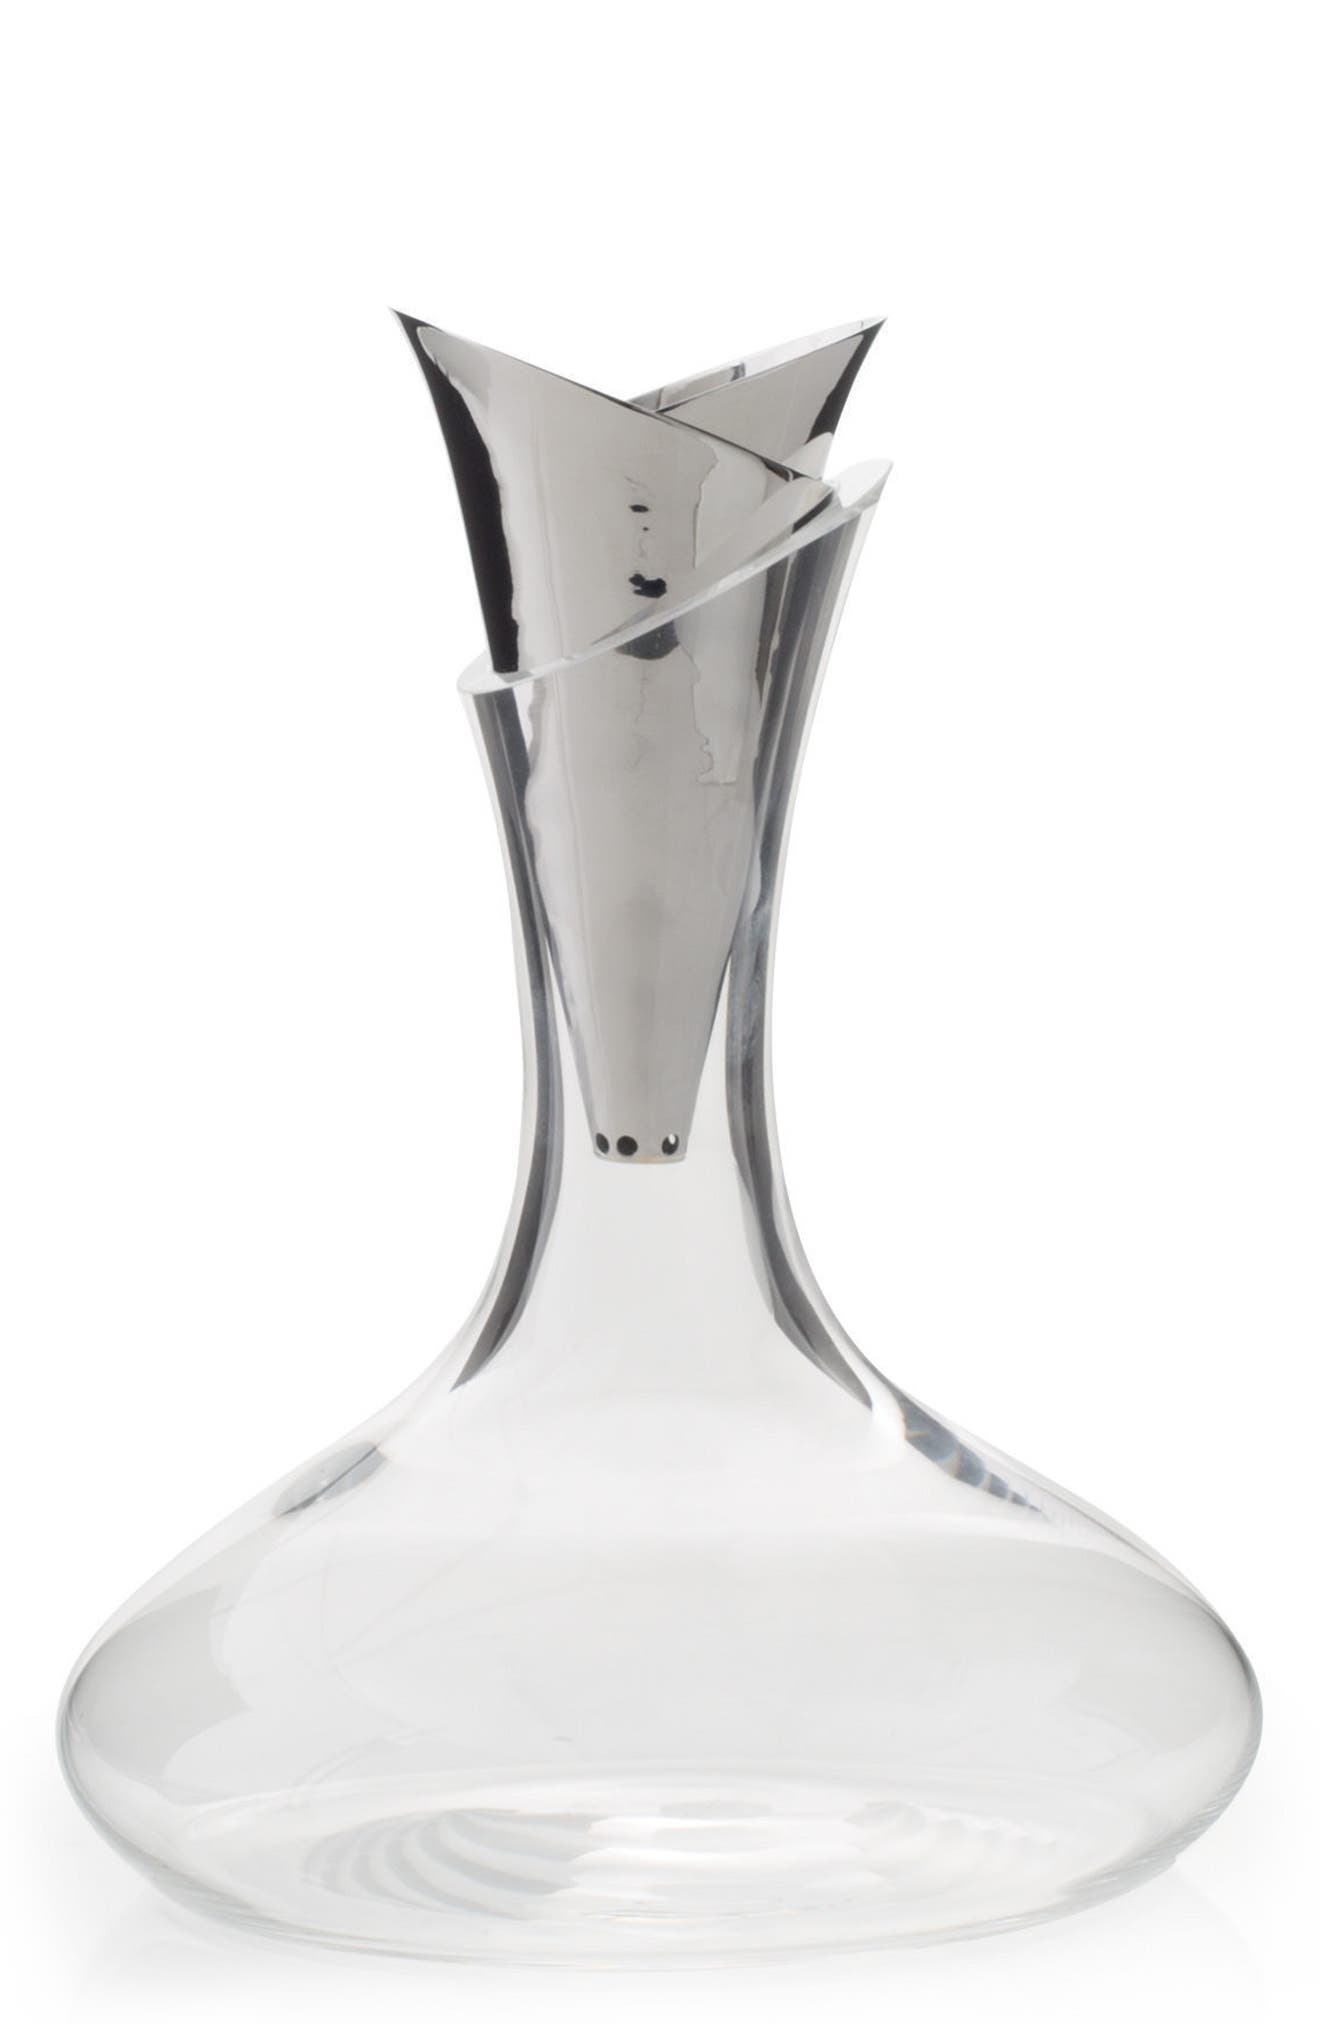 Ripple Effect Decanter,                             Main thumbnail 1, color,                             Ripple Effect